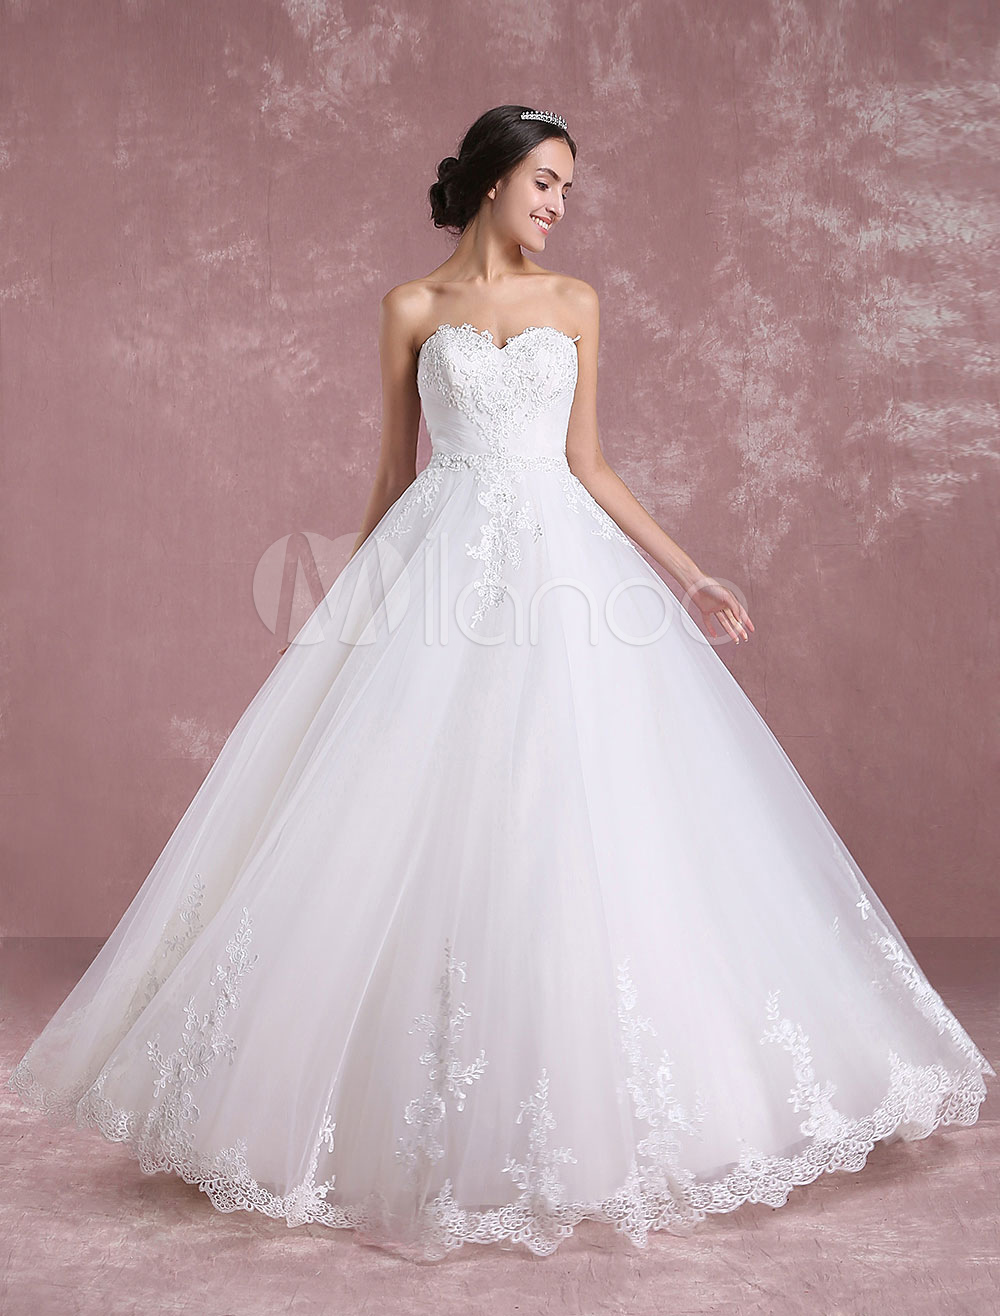 Buy Ivory Wedding Dress Sweetheart Backless Tulle Bridal Dress Strapless Lace Applique Beading A Line Floor Length Bridal Gown for $273.59 in Milanoo store